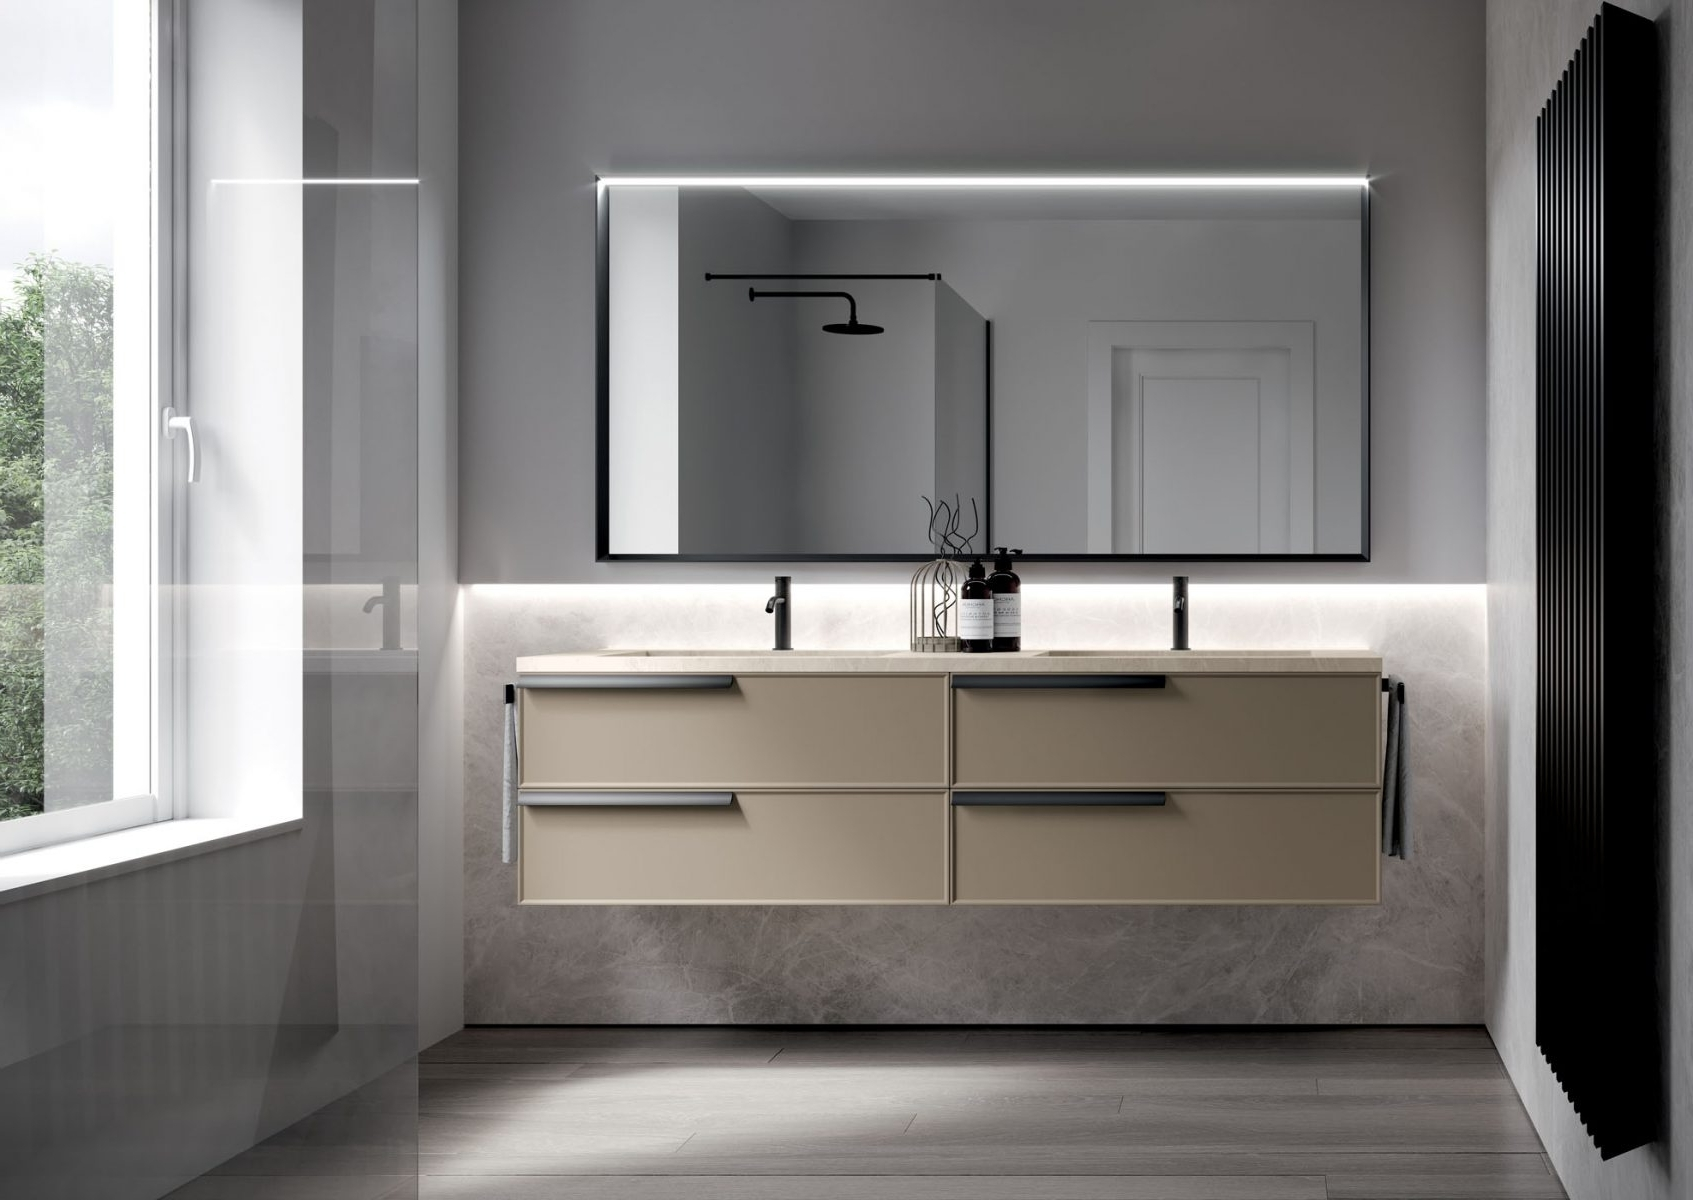 Form: Floor Standing And Suspended Bathroom Cabinets Ideagroup Idea Group Bathrooms